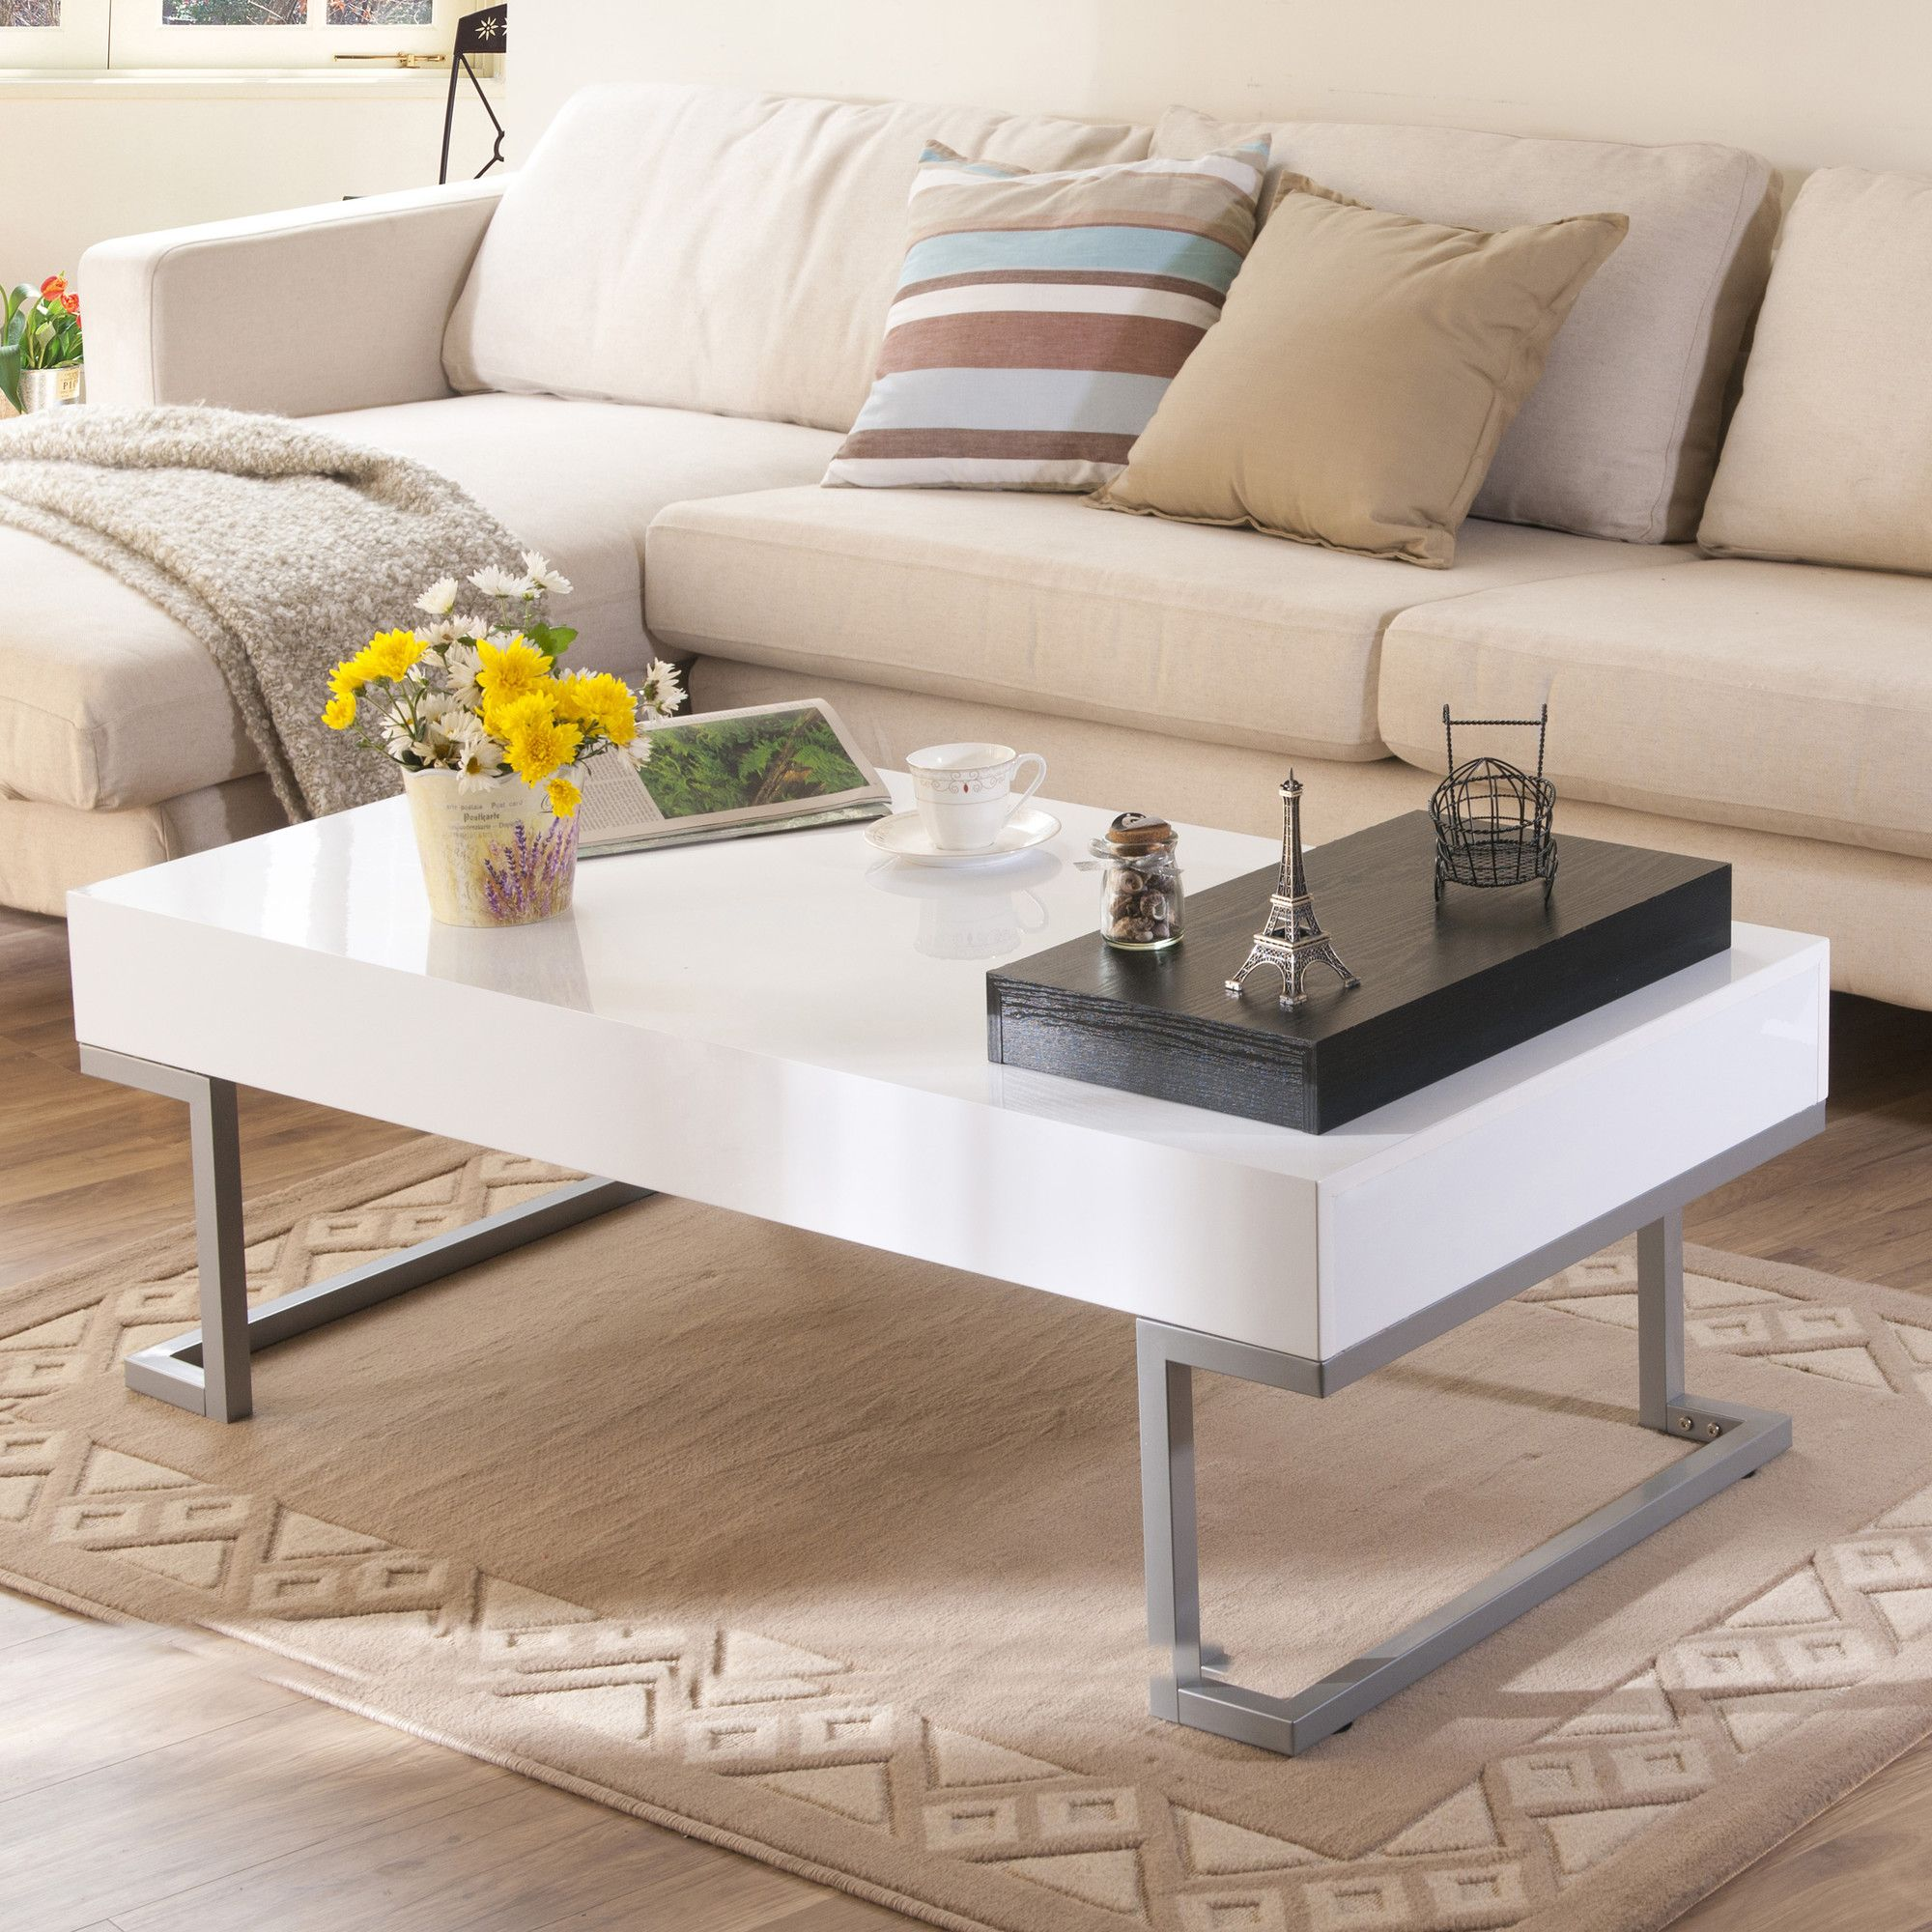 Hokku Designs Elle Modern Coffee Table Reviews Coffee Table Living Room Coffee Table White Coffee Table Living Room